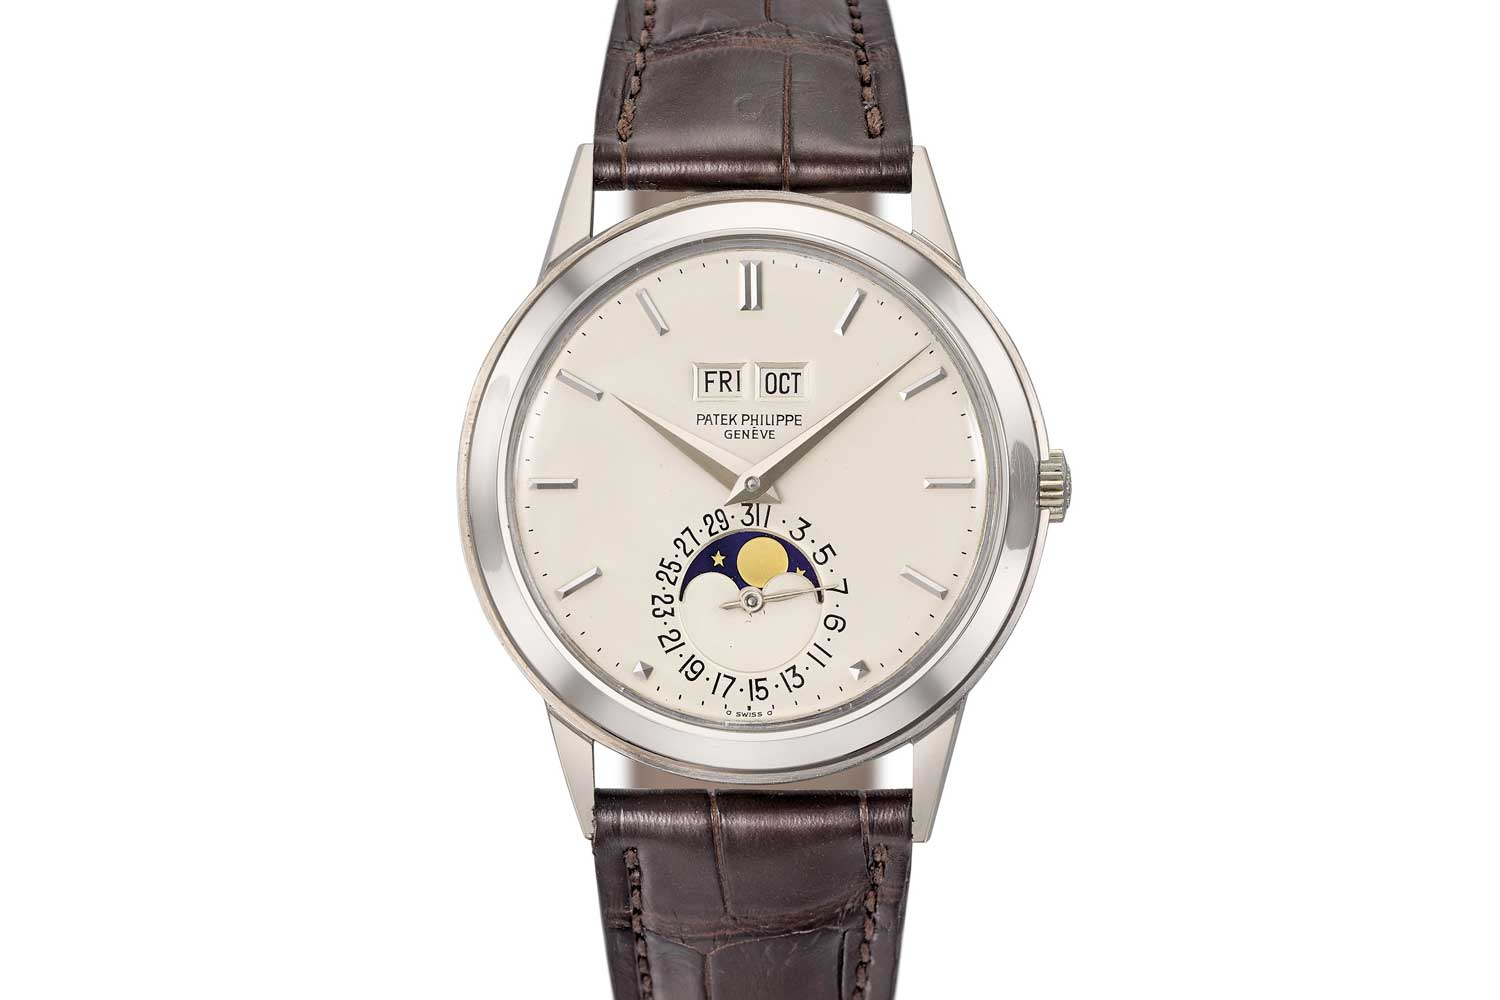 Lot 112: Patek Philippe, an extremely fine, very rare and highly attractive 18k white gold automatic perpetual calendar wristwatch with moonphase and box